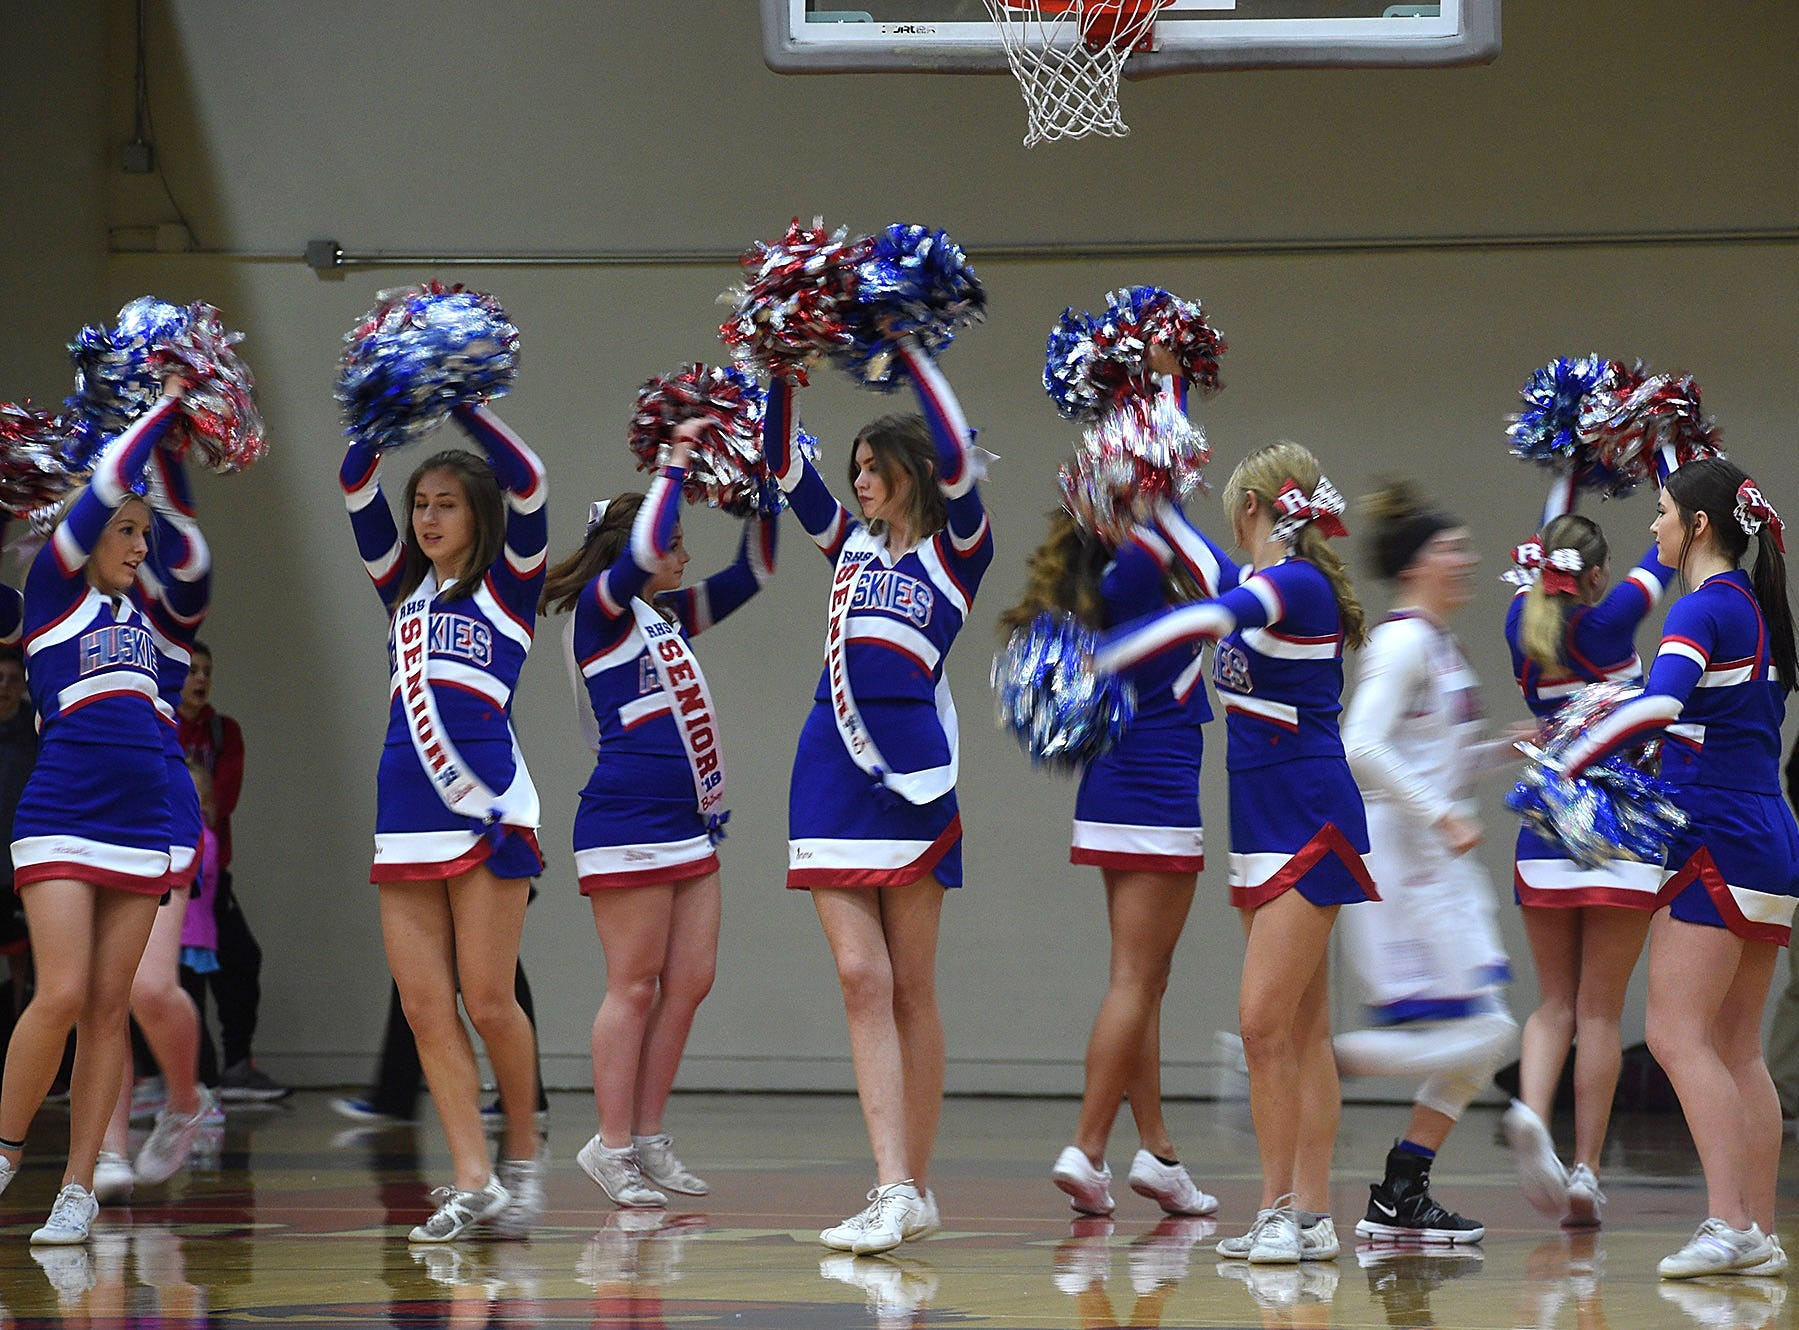 Cheerleaders help introduce the players as Reno takes on McQueen during their basketball game at Reno on Feb. 9, 2018.